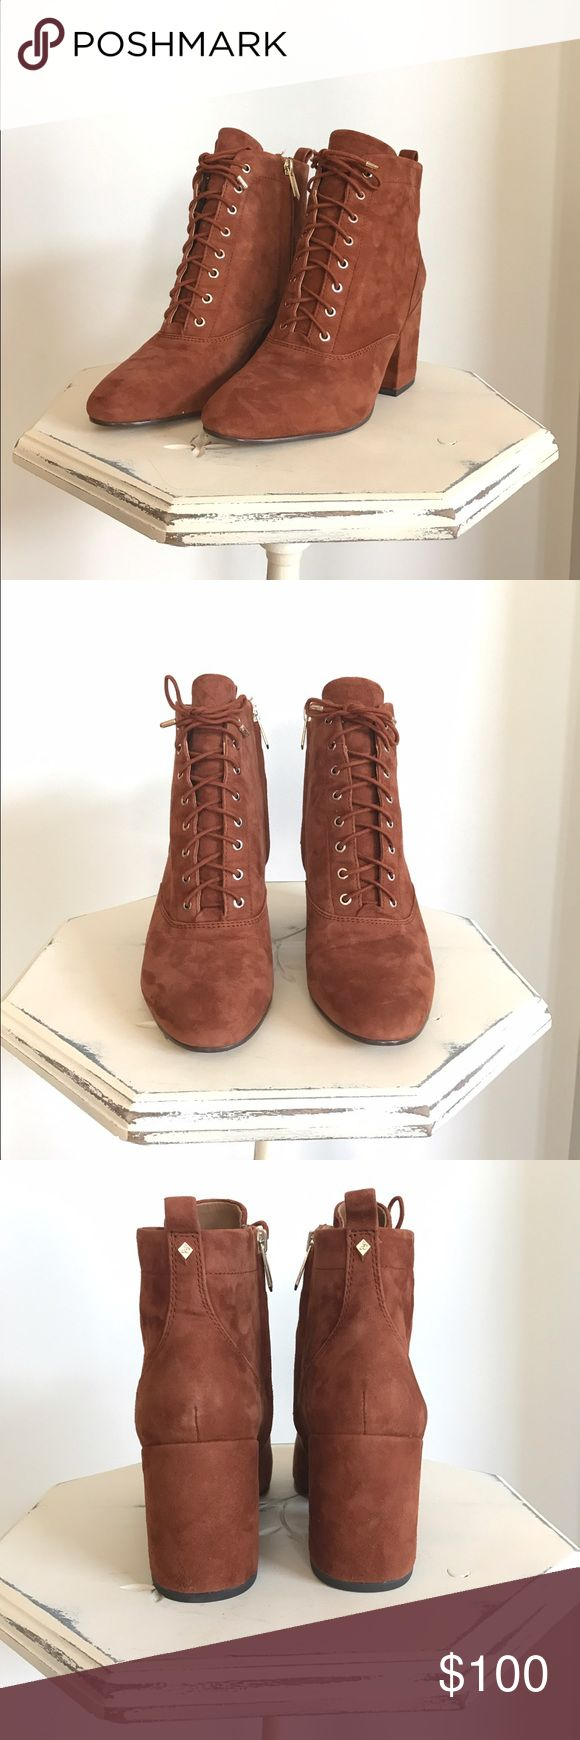 Sam Edelman Tate Lace-Up Bootie NWT Tate ankle boot in a gorgeous cinnamon color with a block heel and suede finish. These are so stylish and go with just about anything. Heel height 2.75 inches. New and never worn in original box. Sam Edelman Shoes Ankle Boots & Booties